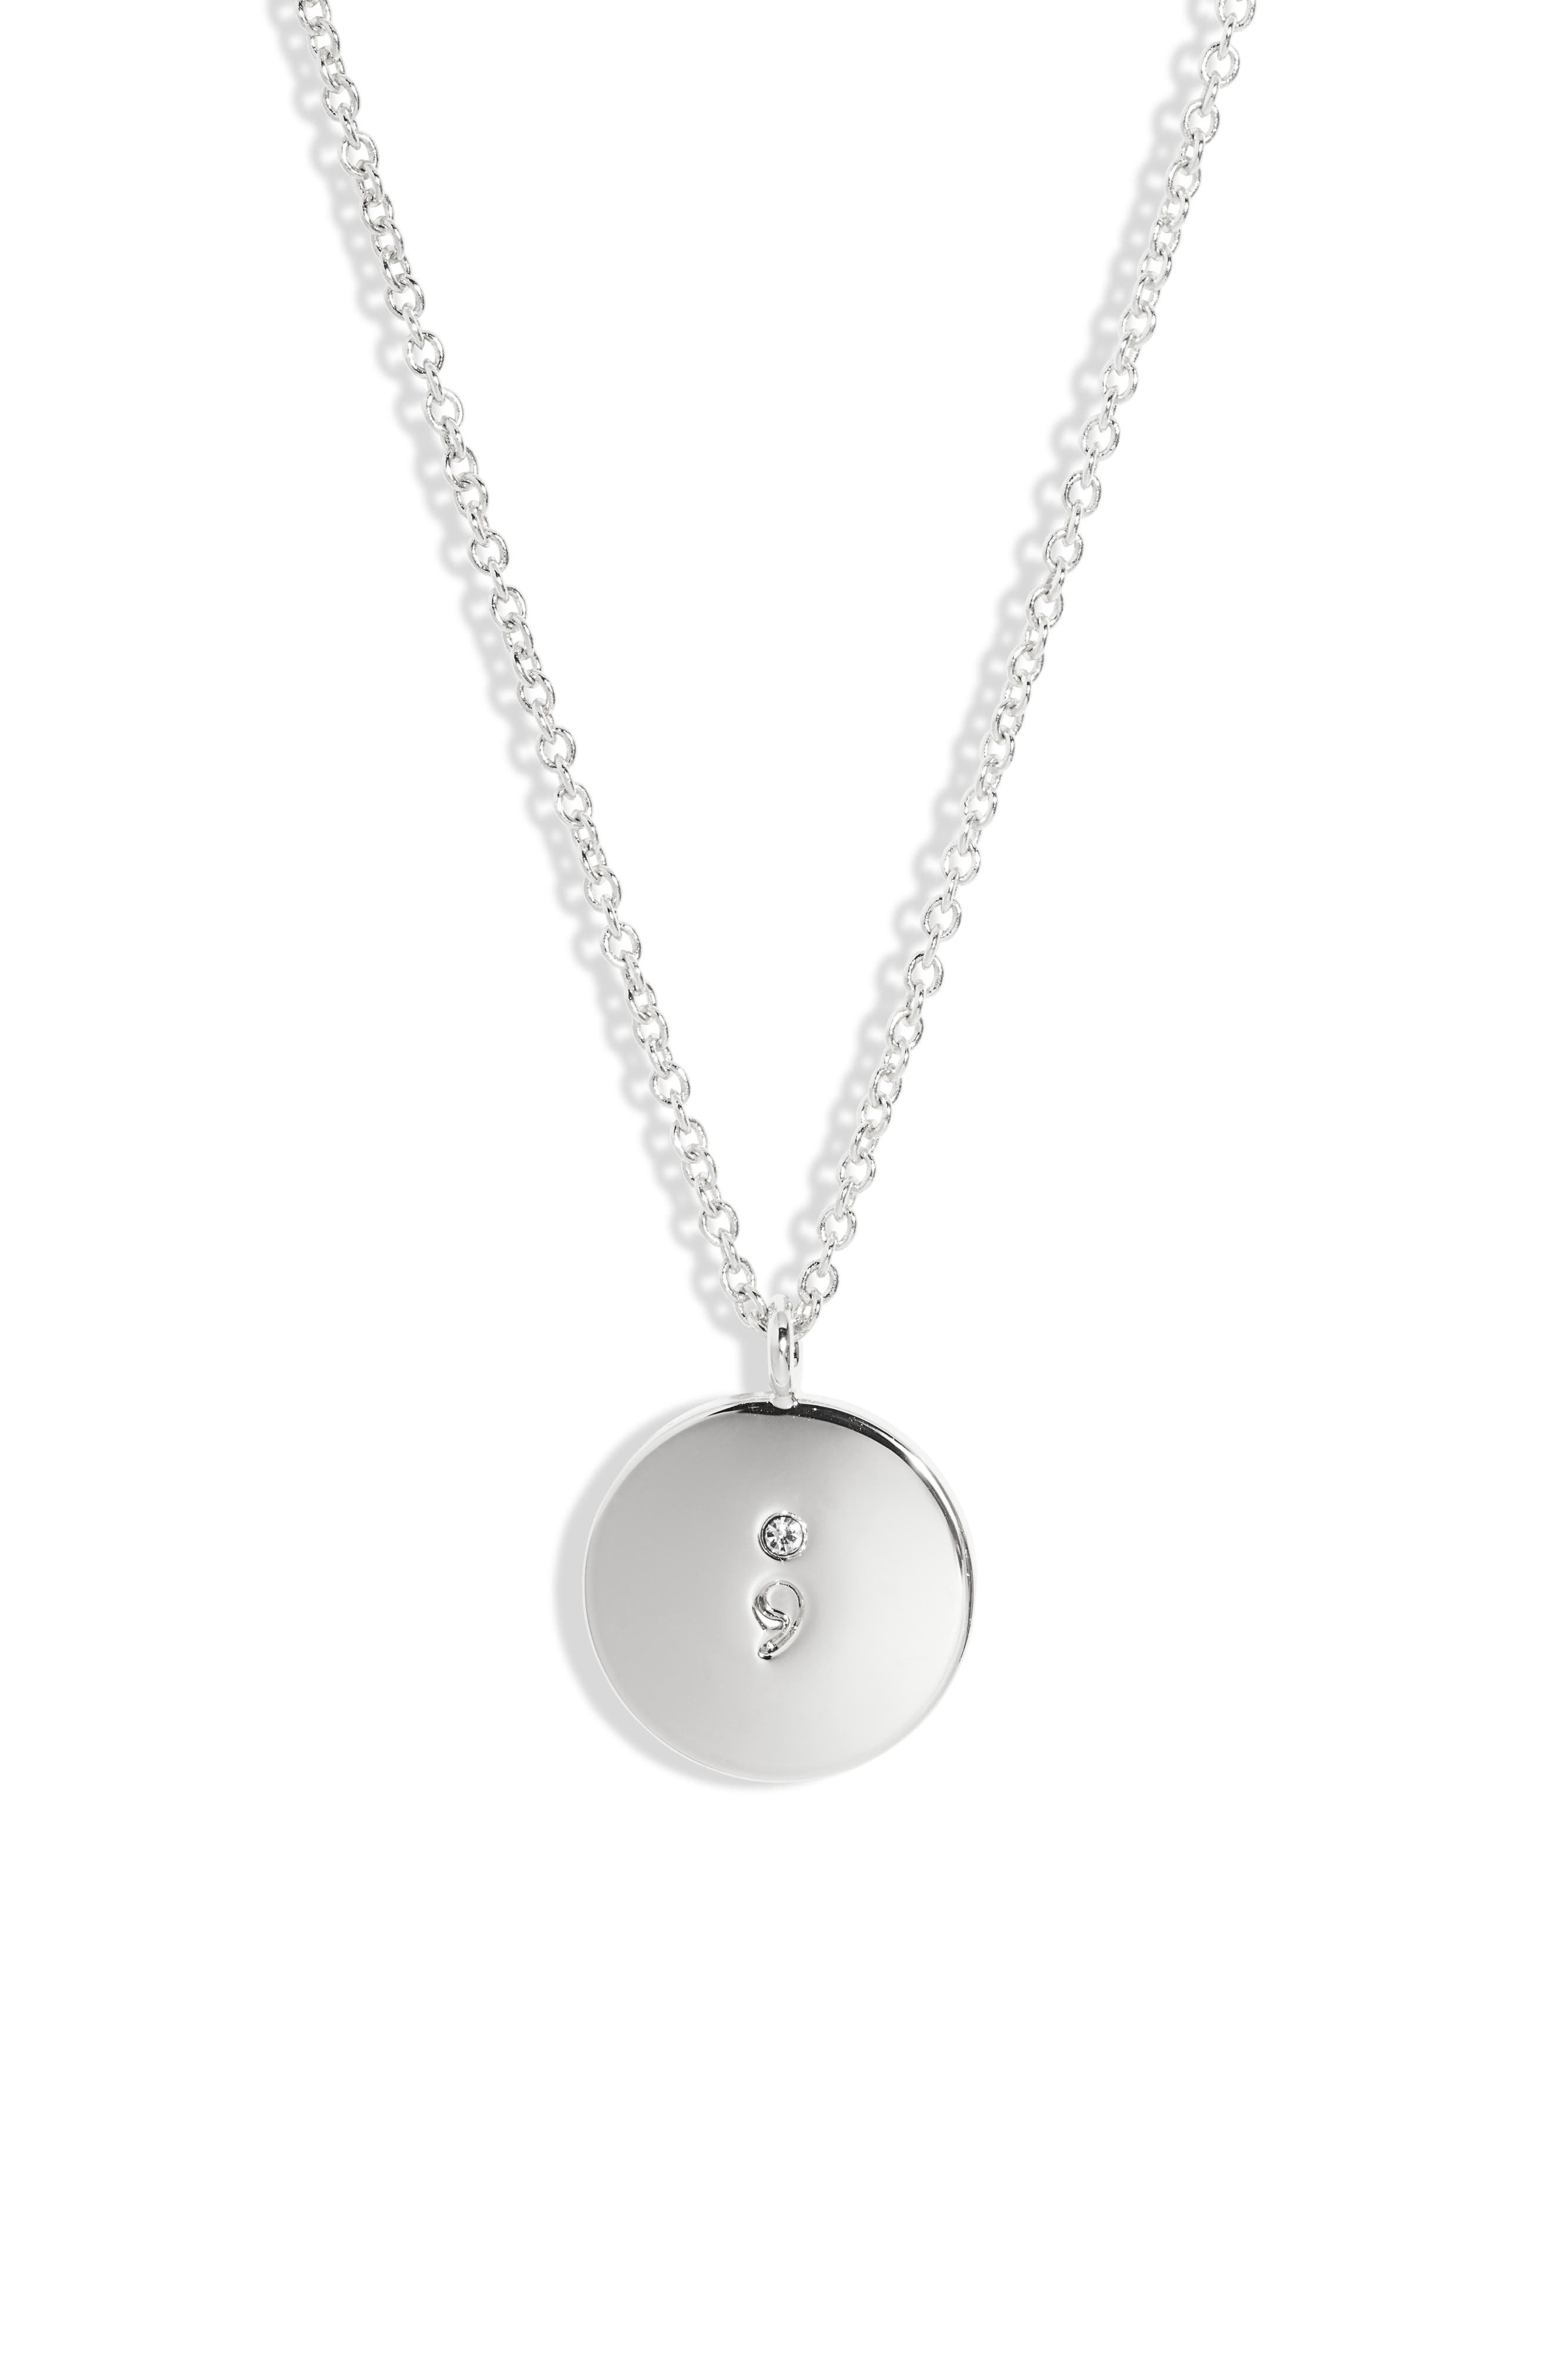 It Doesn't End Here Semicolon Pendant Necklace in Silver at Nordstrom